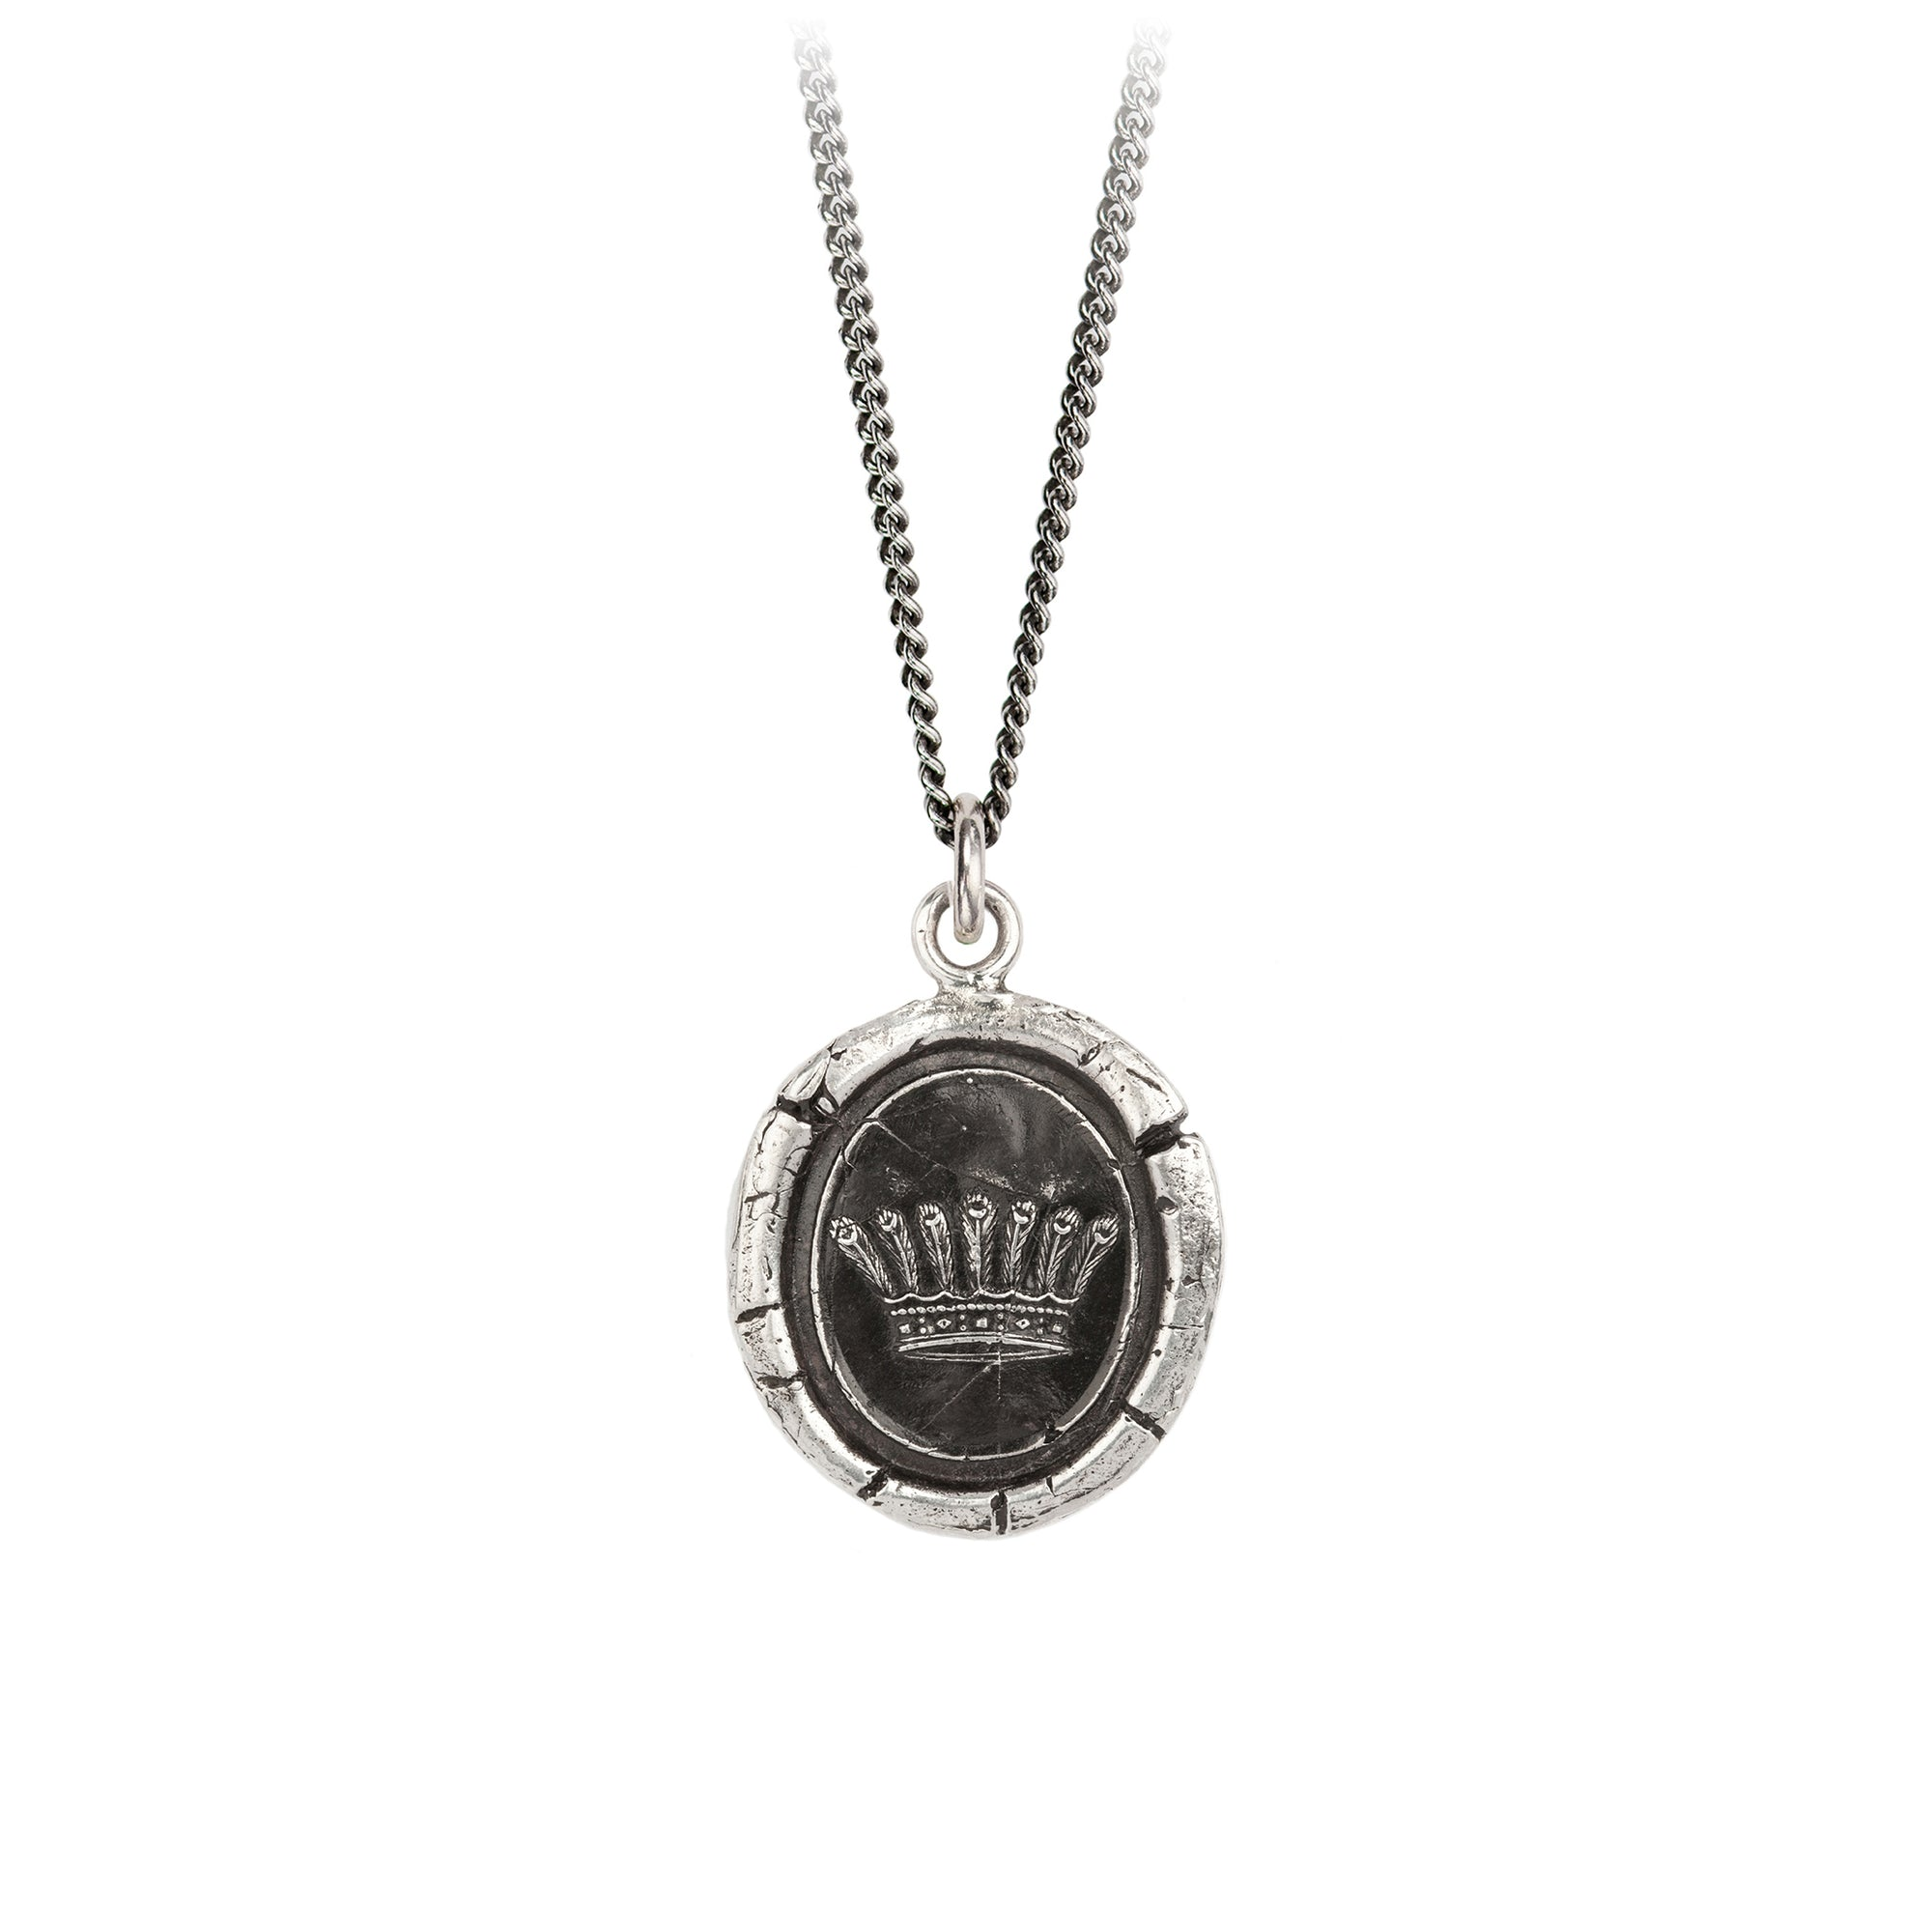 Pyrrha Accomplishment Talisman Necklace Fine Curb Chain Silver